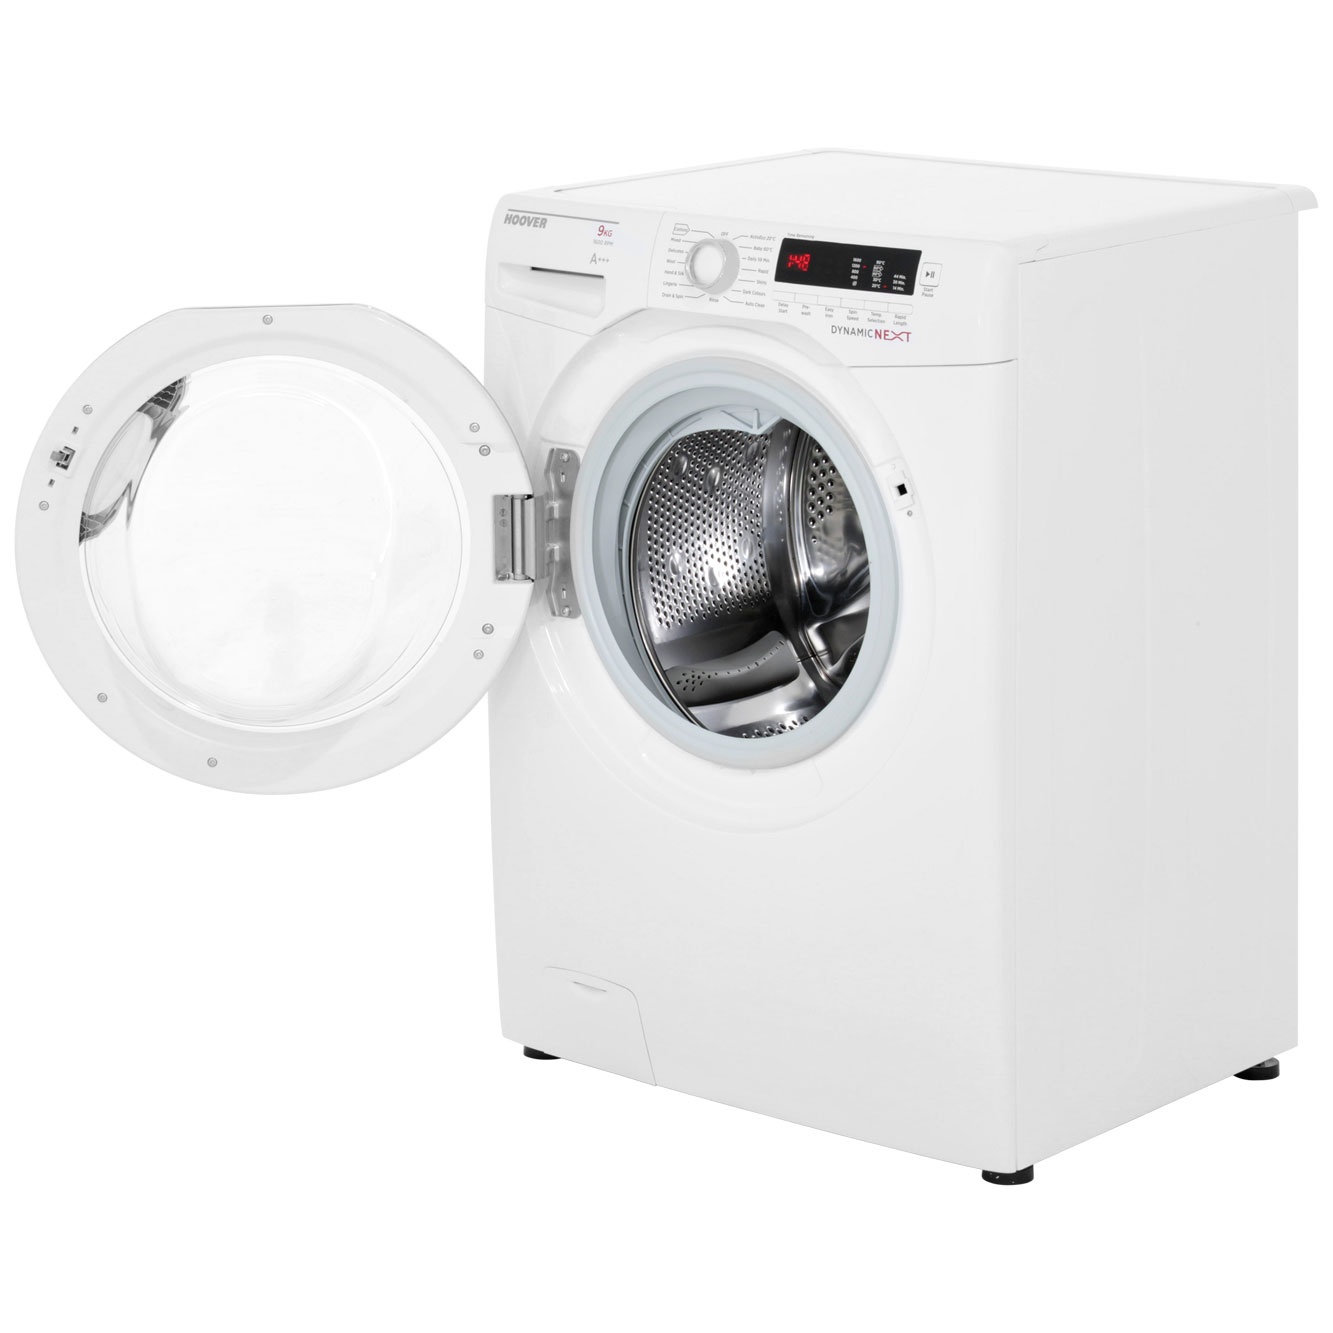 Hoover Dxcc69w3 Washing Machine Appliance Spotter